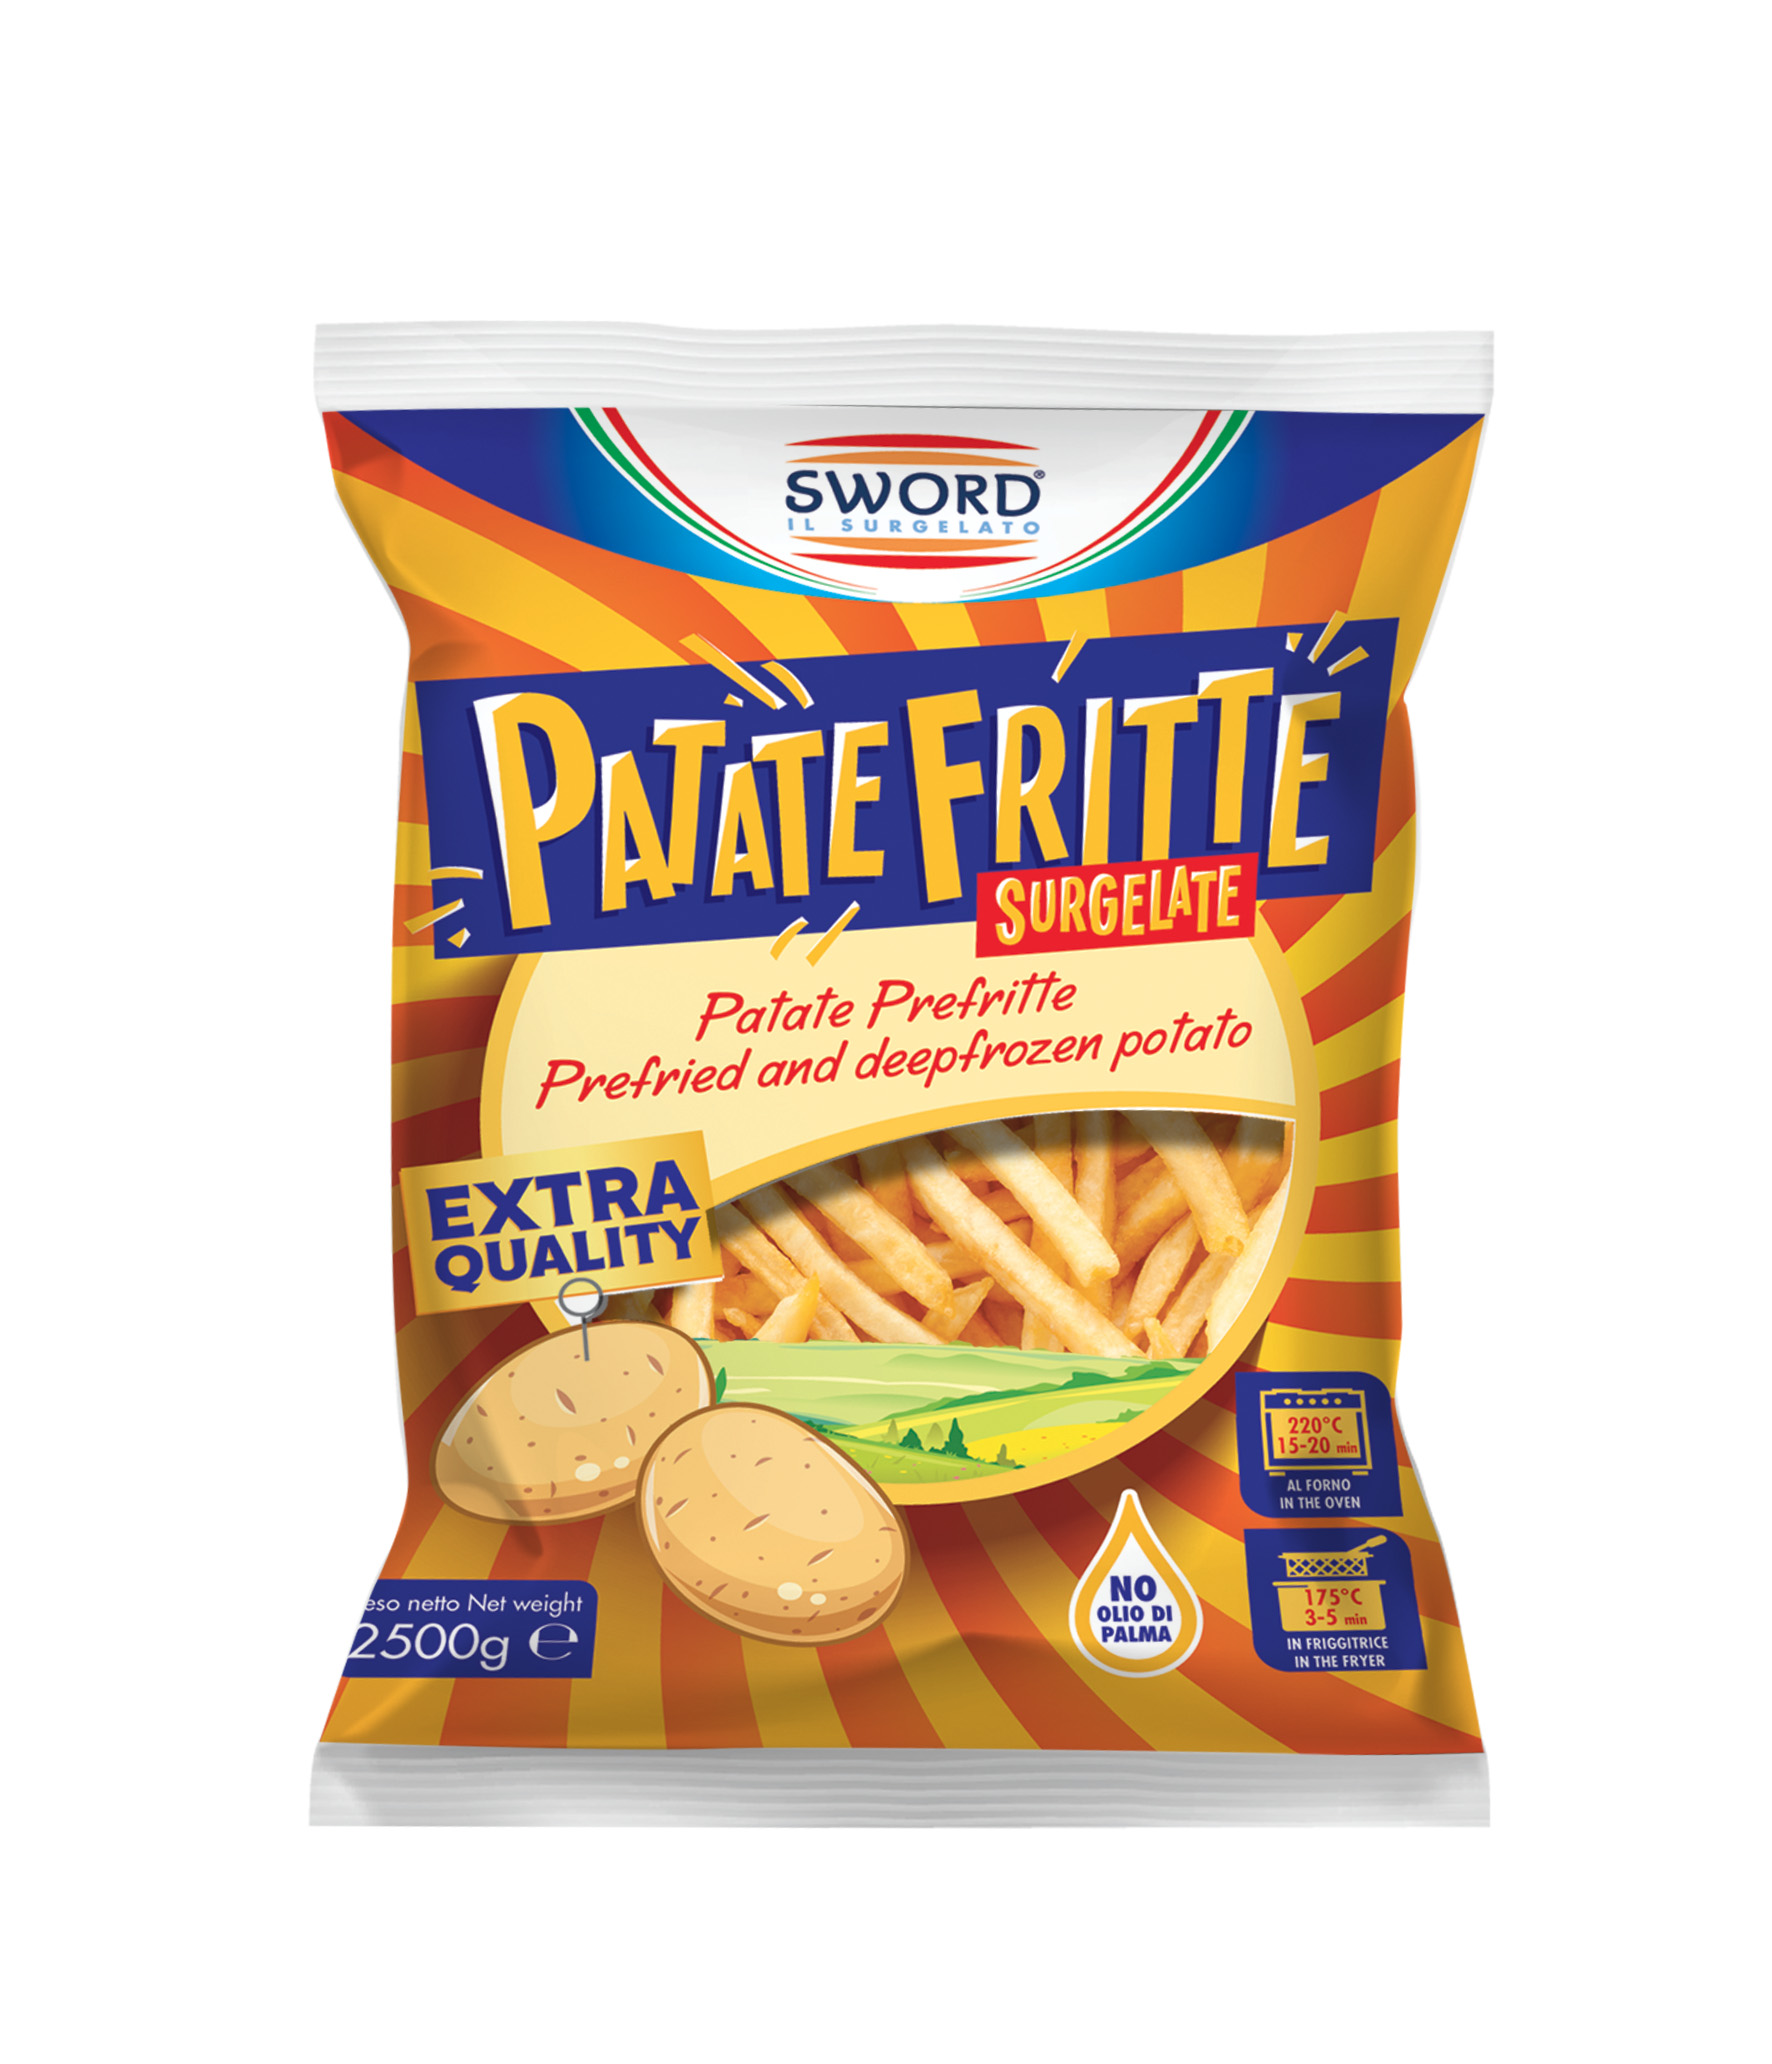 Patate fritte extra quality